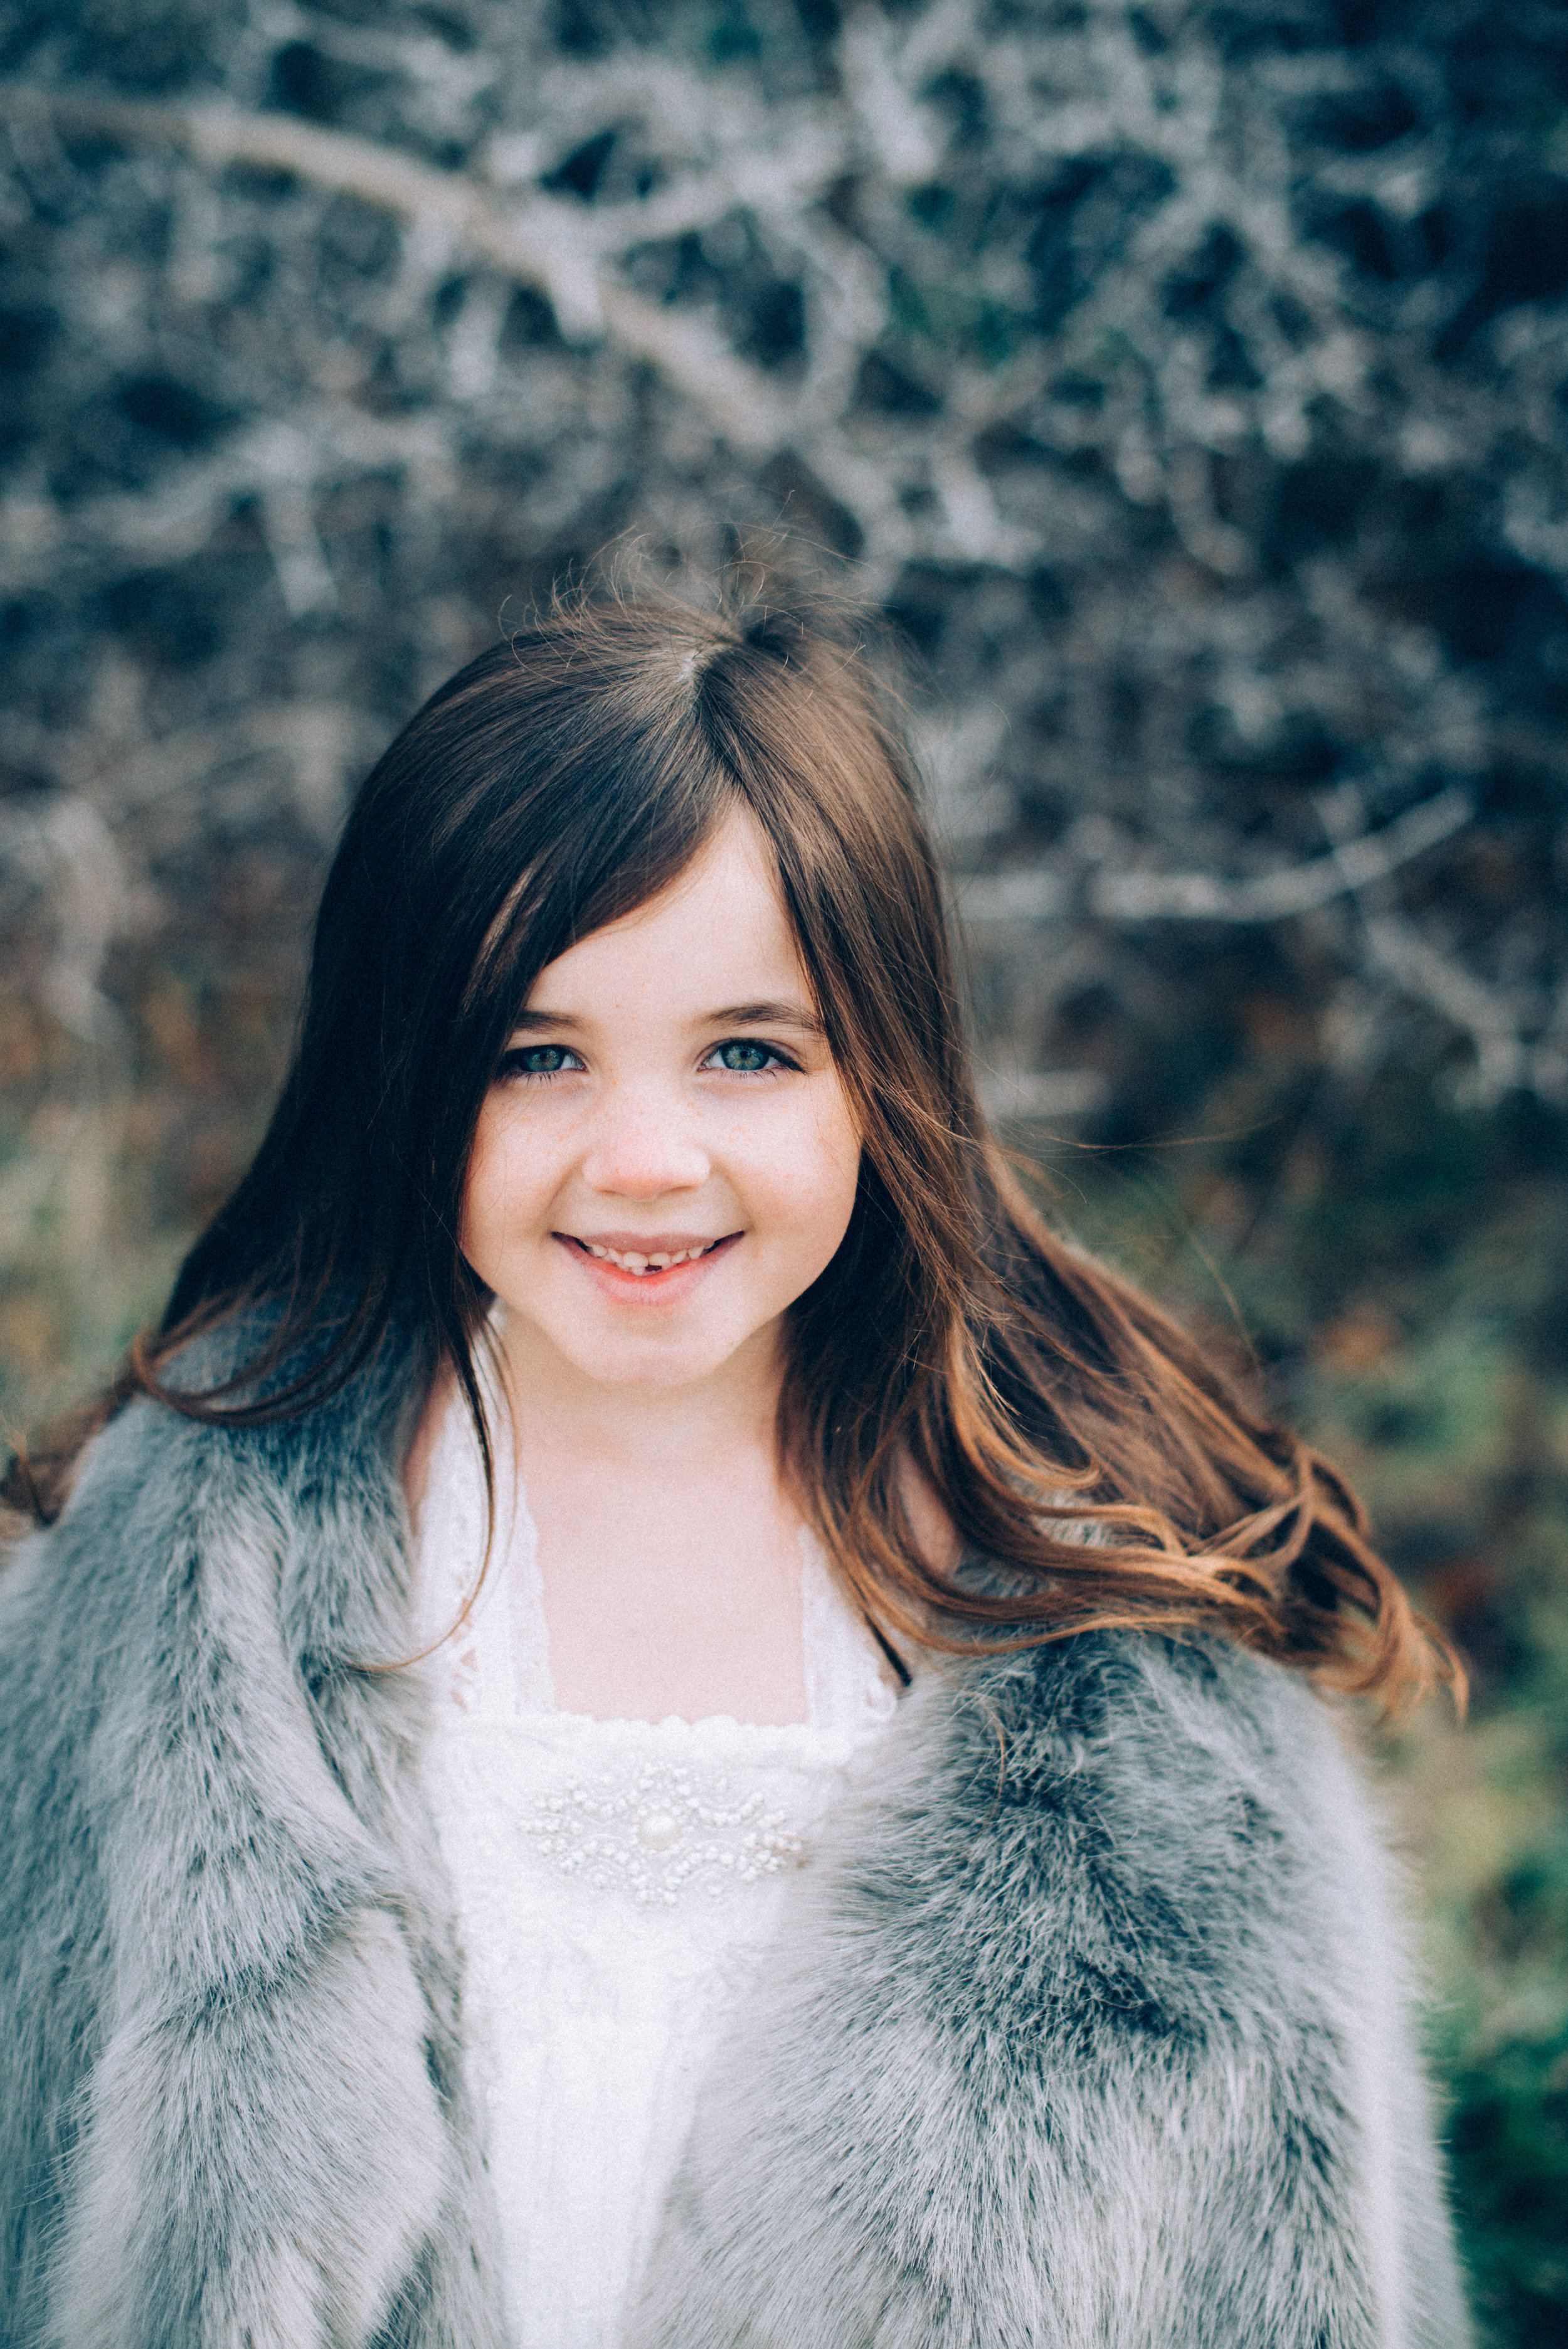 Chloe 6 Year Frozen Shoot-23.jpg